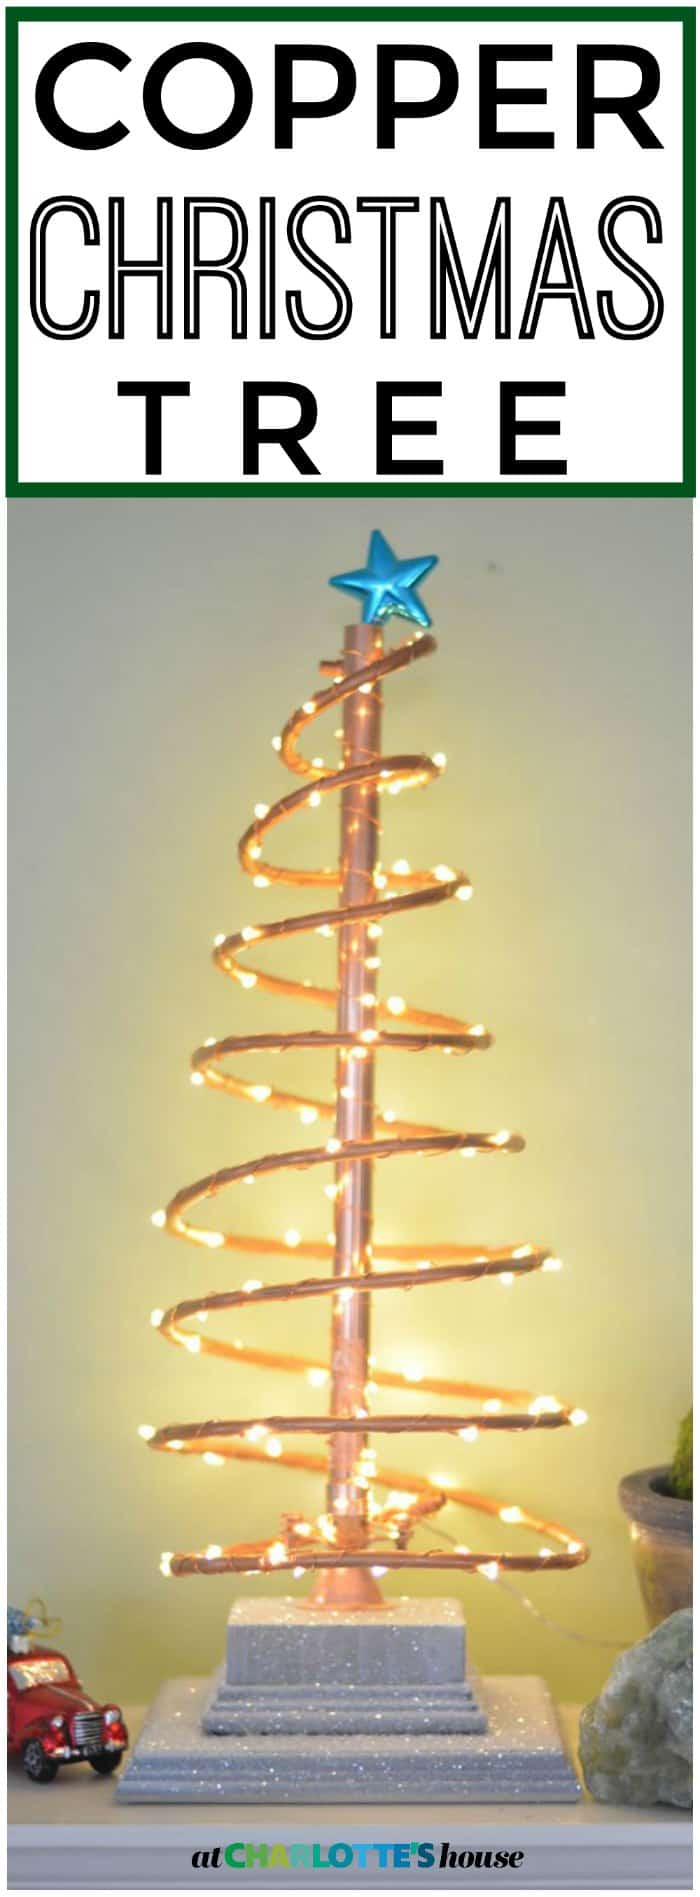 DIY spiral copper Christmas tree.